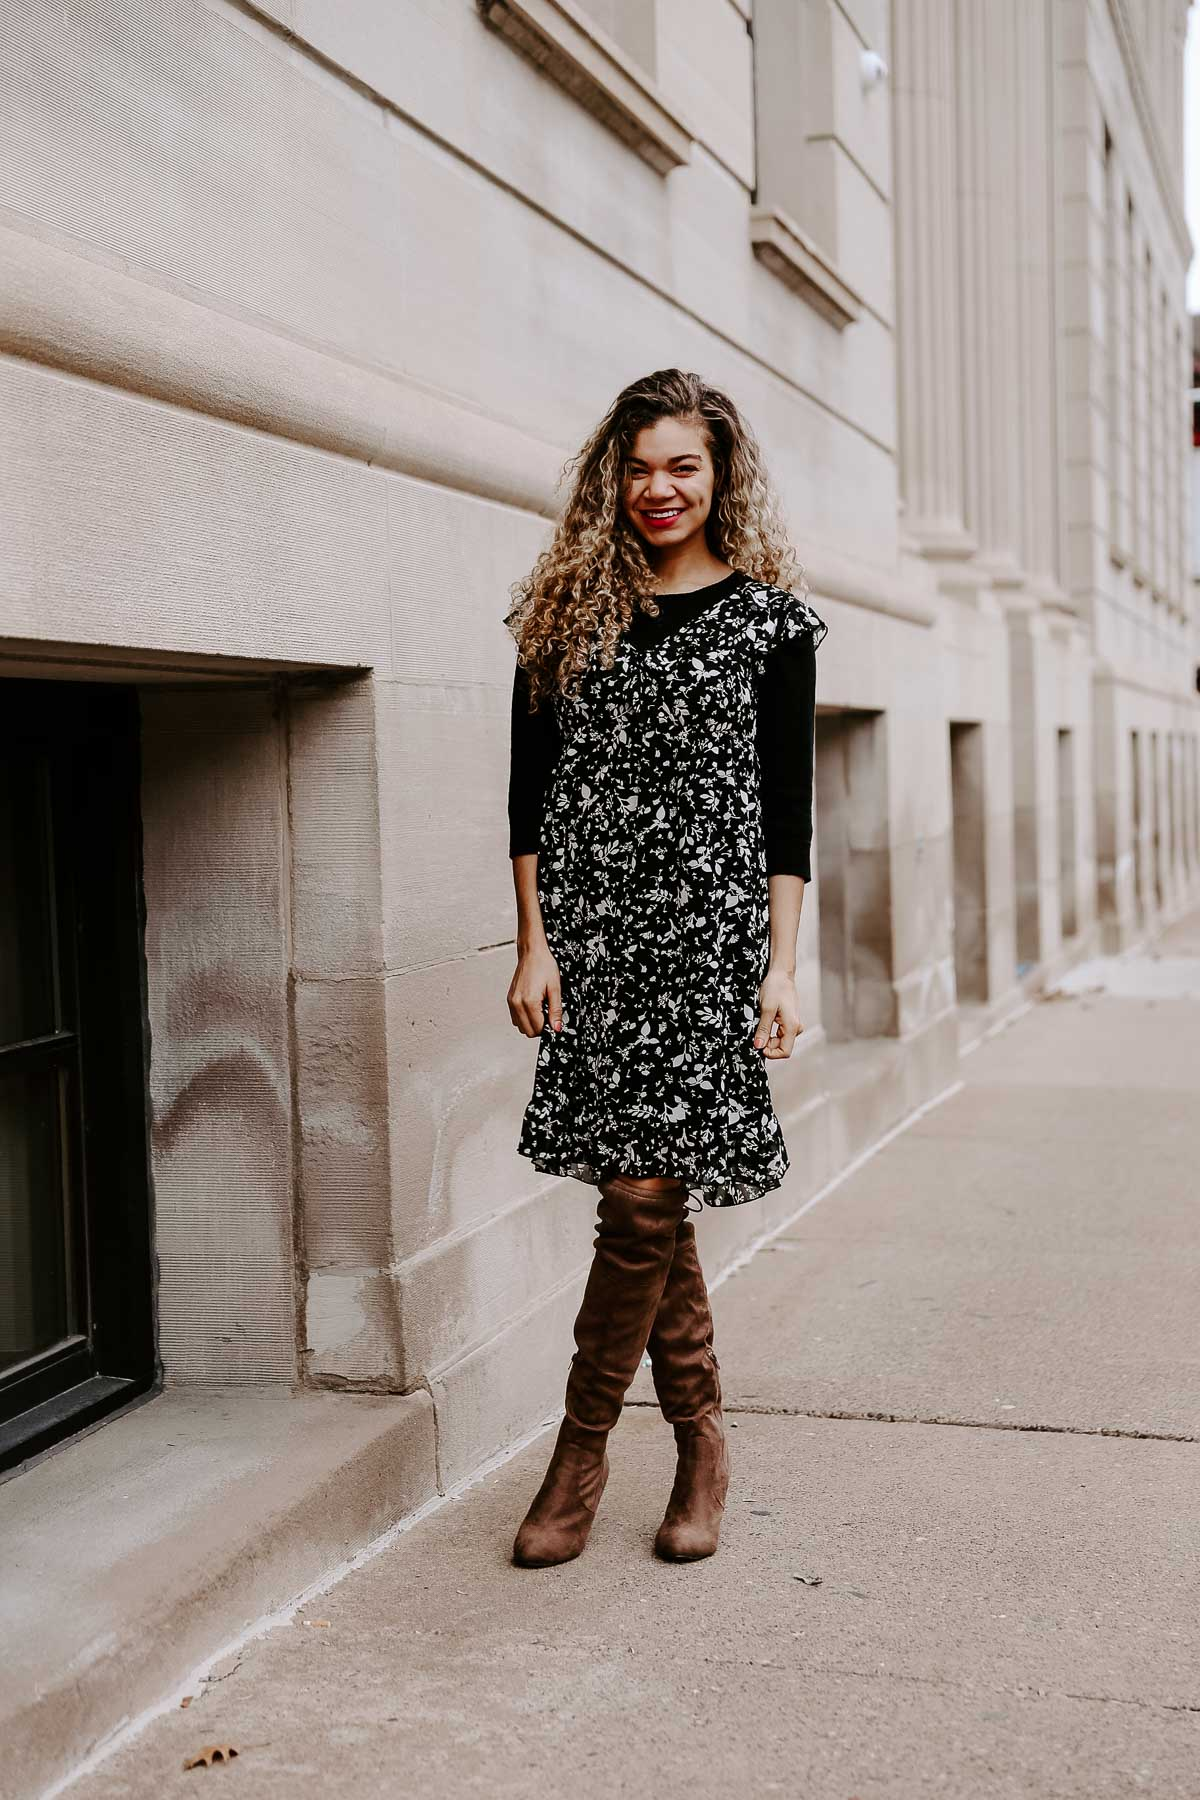 Here are some great style hacks to have your summer pieces work for fall. Your wardrobe just got a lot more winter style outfit ideas!